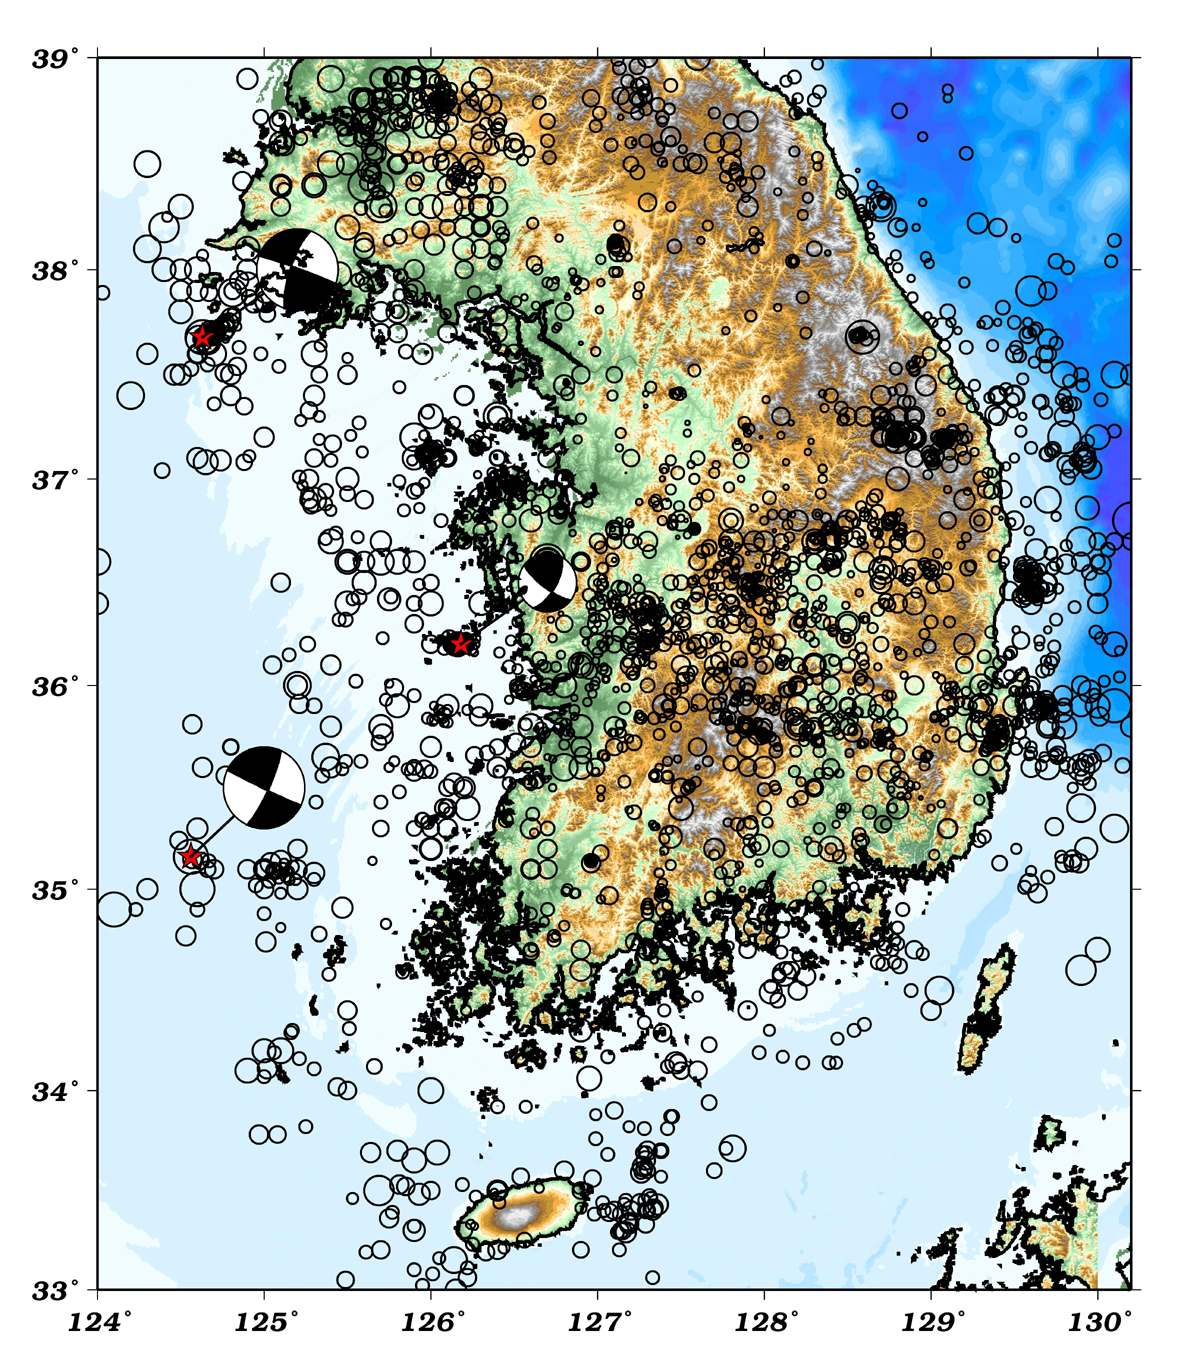 Fig. 1-1. Distribution of earthquakes recorded recently in and around the Korean Peninsula.